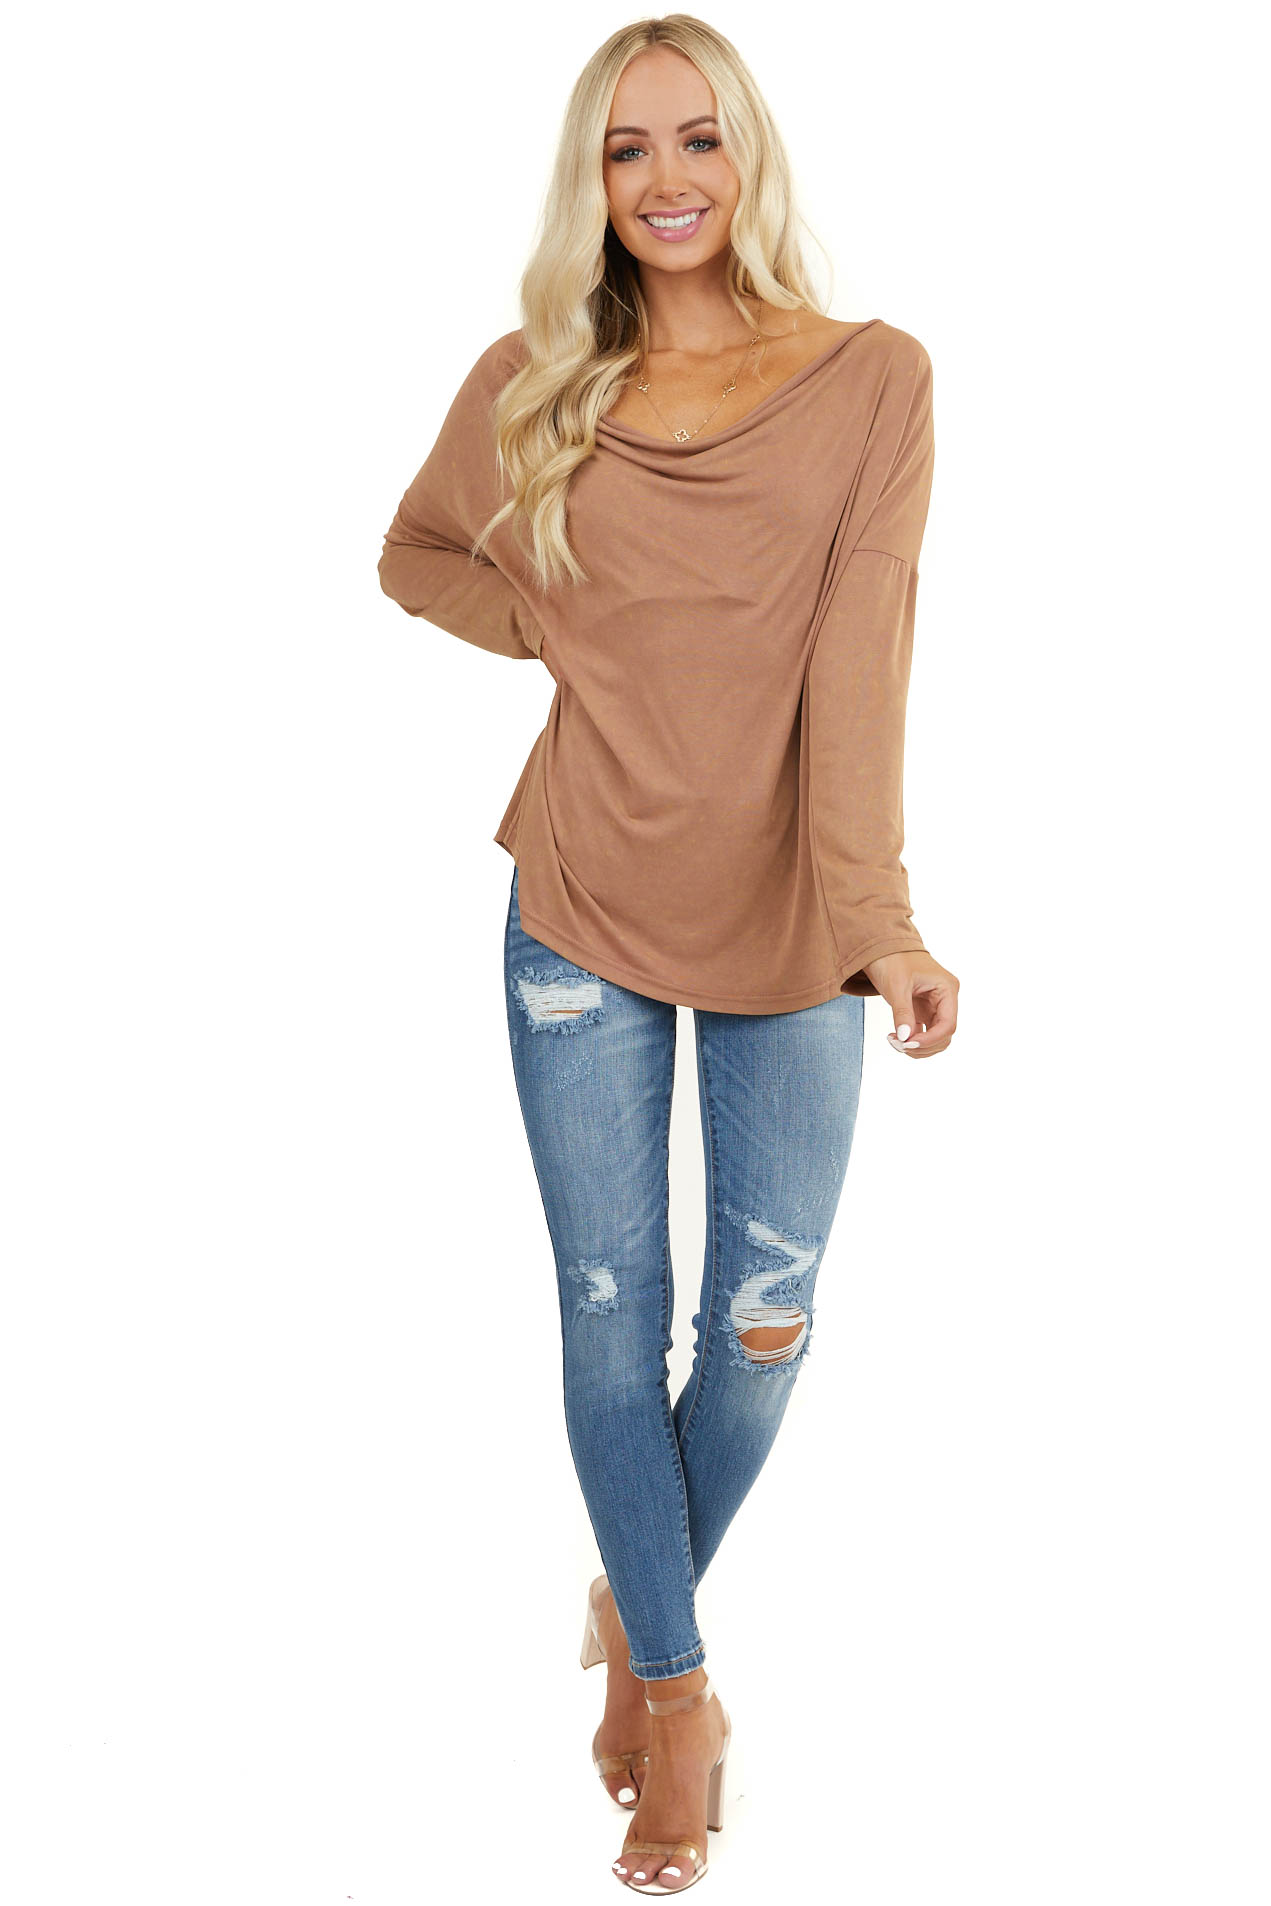 Dark Apricot Mineral Wash Long Sleeve Top with Cowl Neck